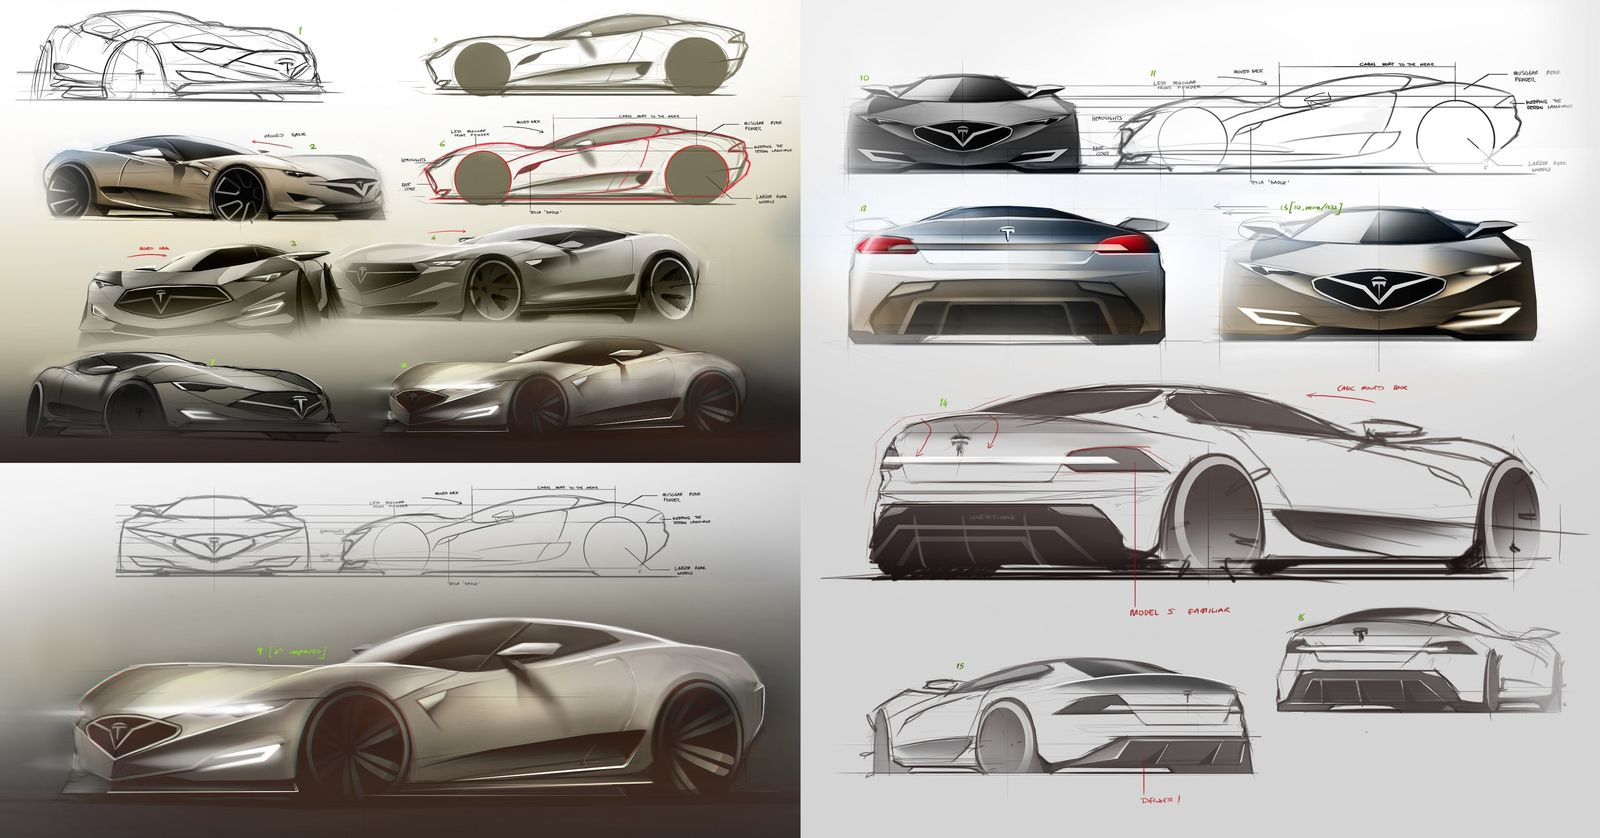 2016 Tesla Model R hypercar concept: design sketches | carwow